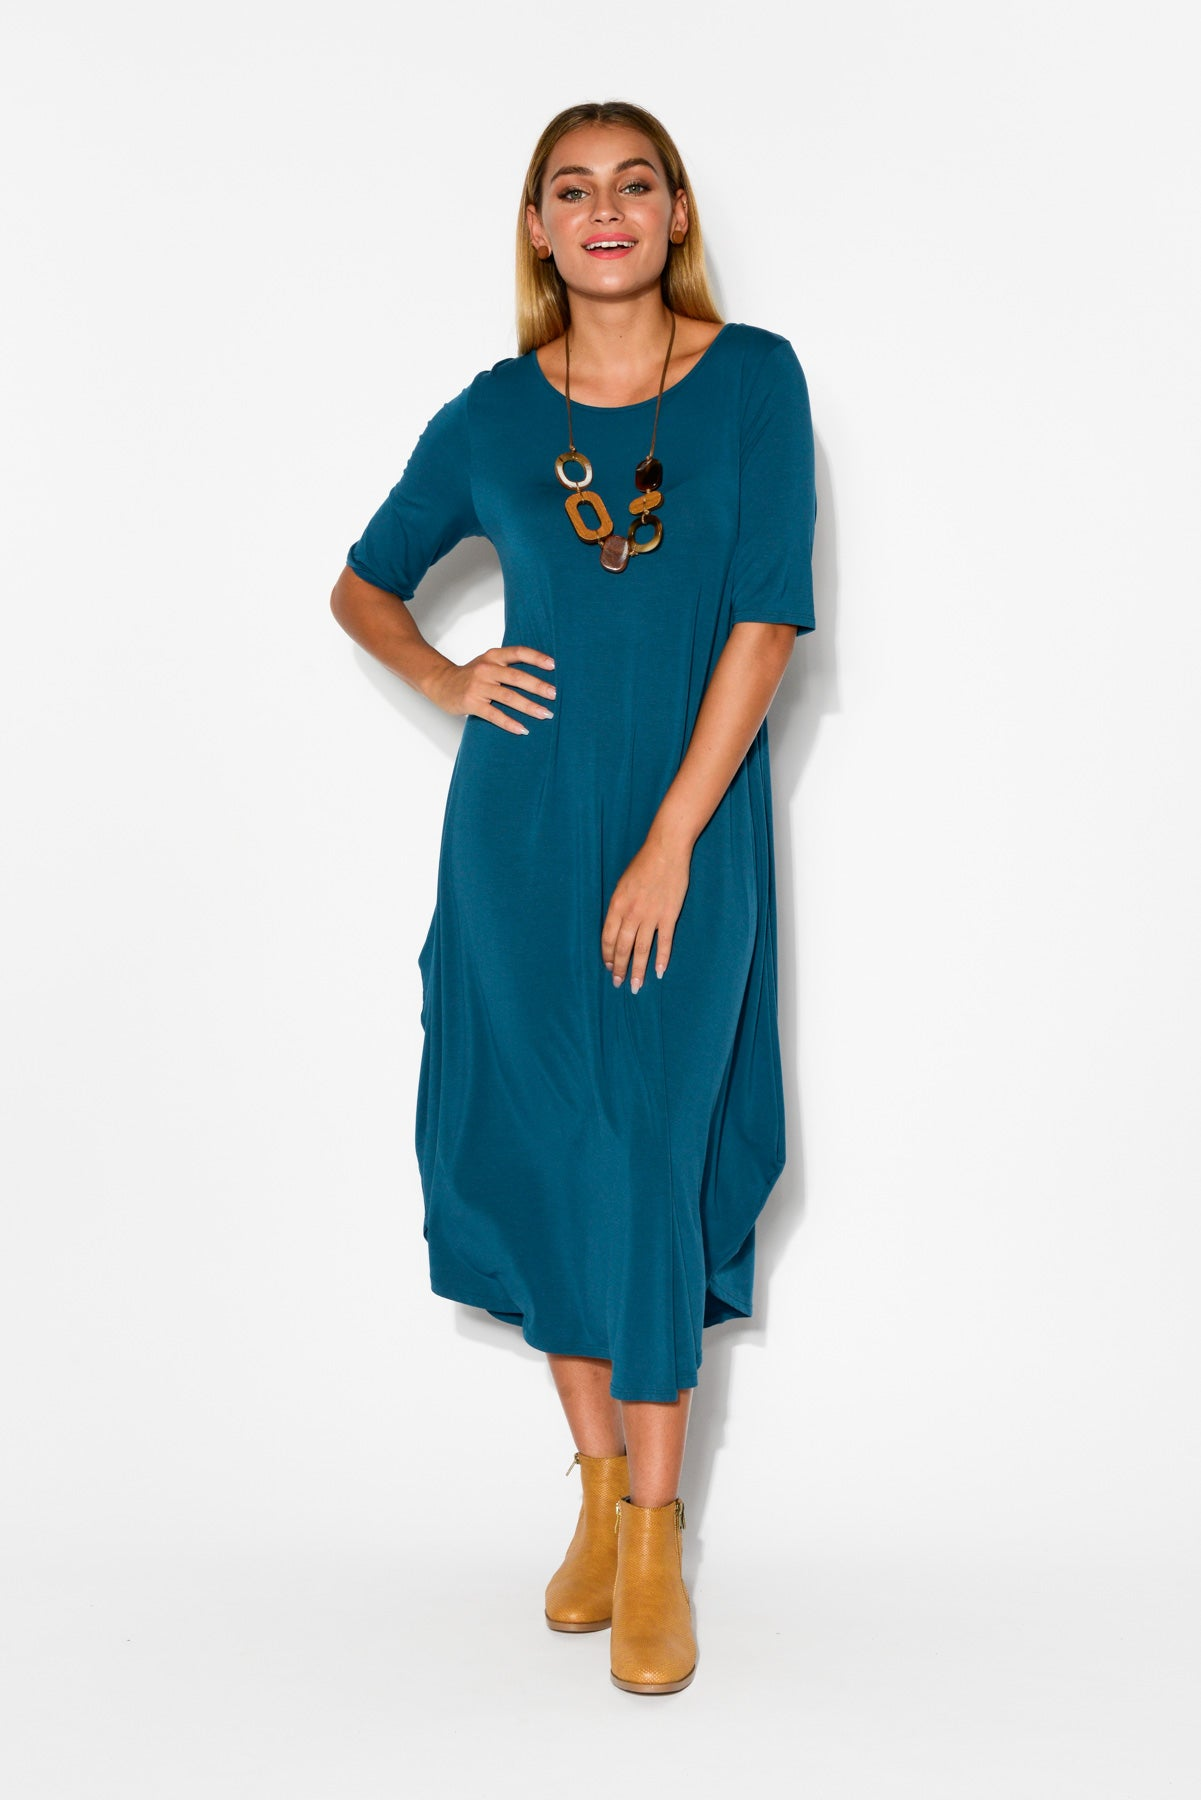 Blue Modal Tri Drape Dress - Blue Bungalow